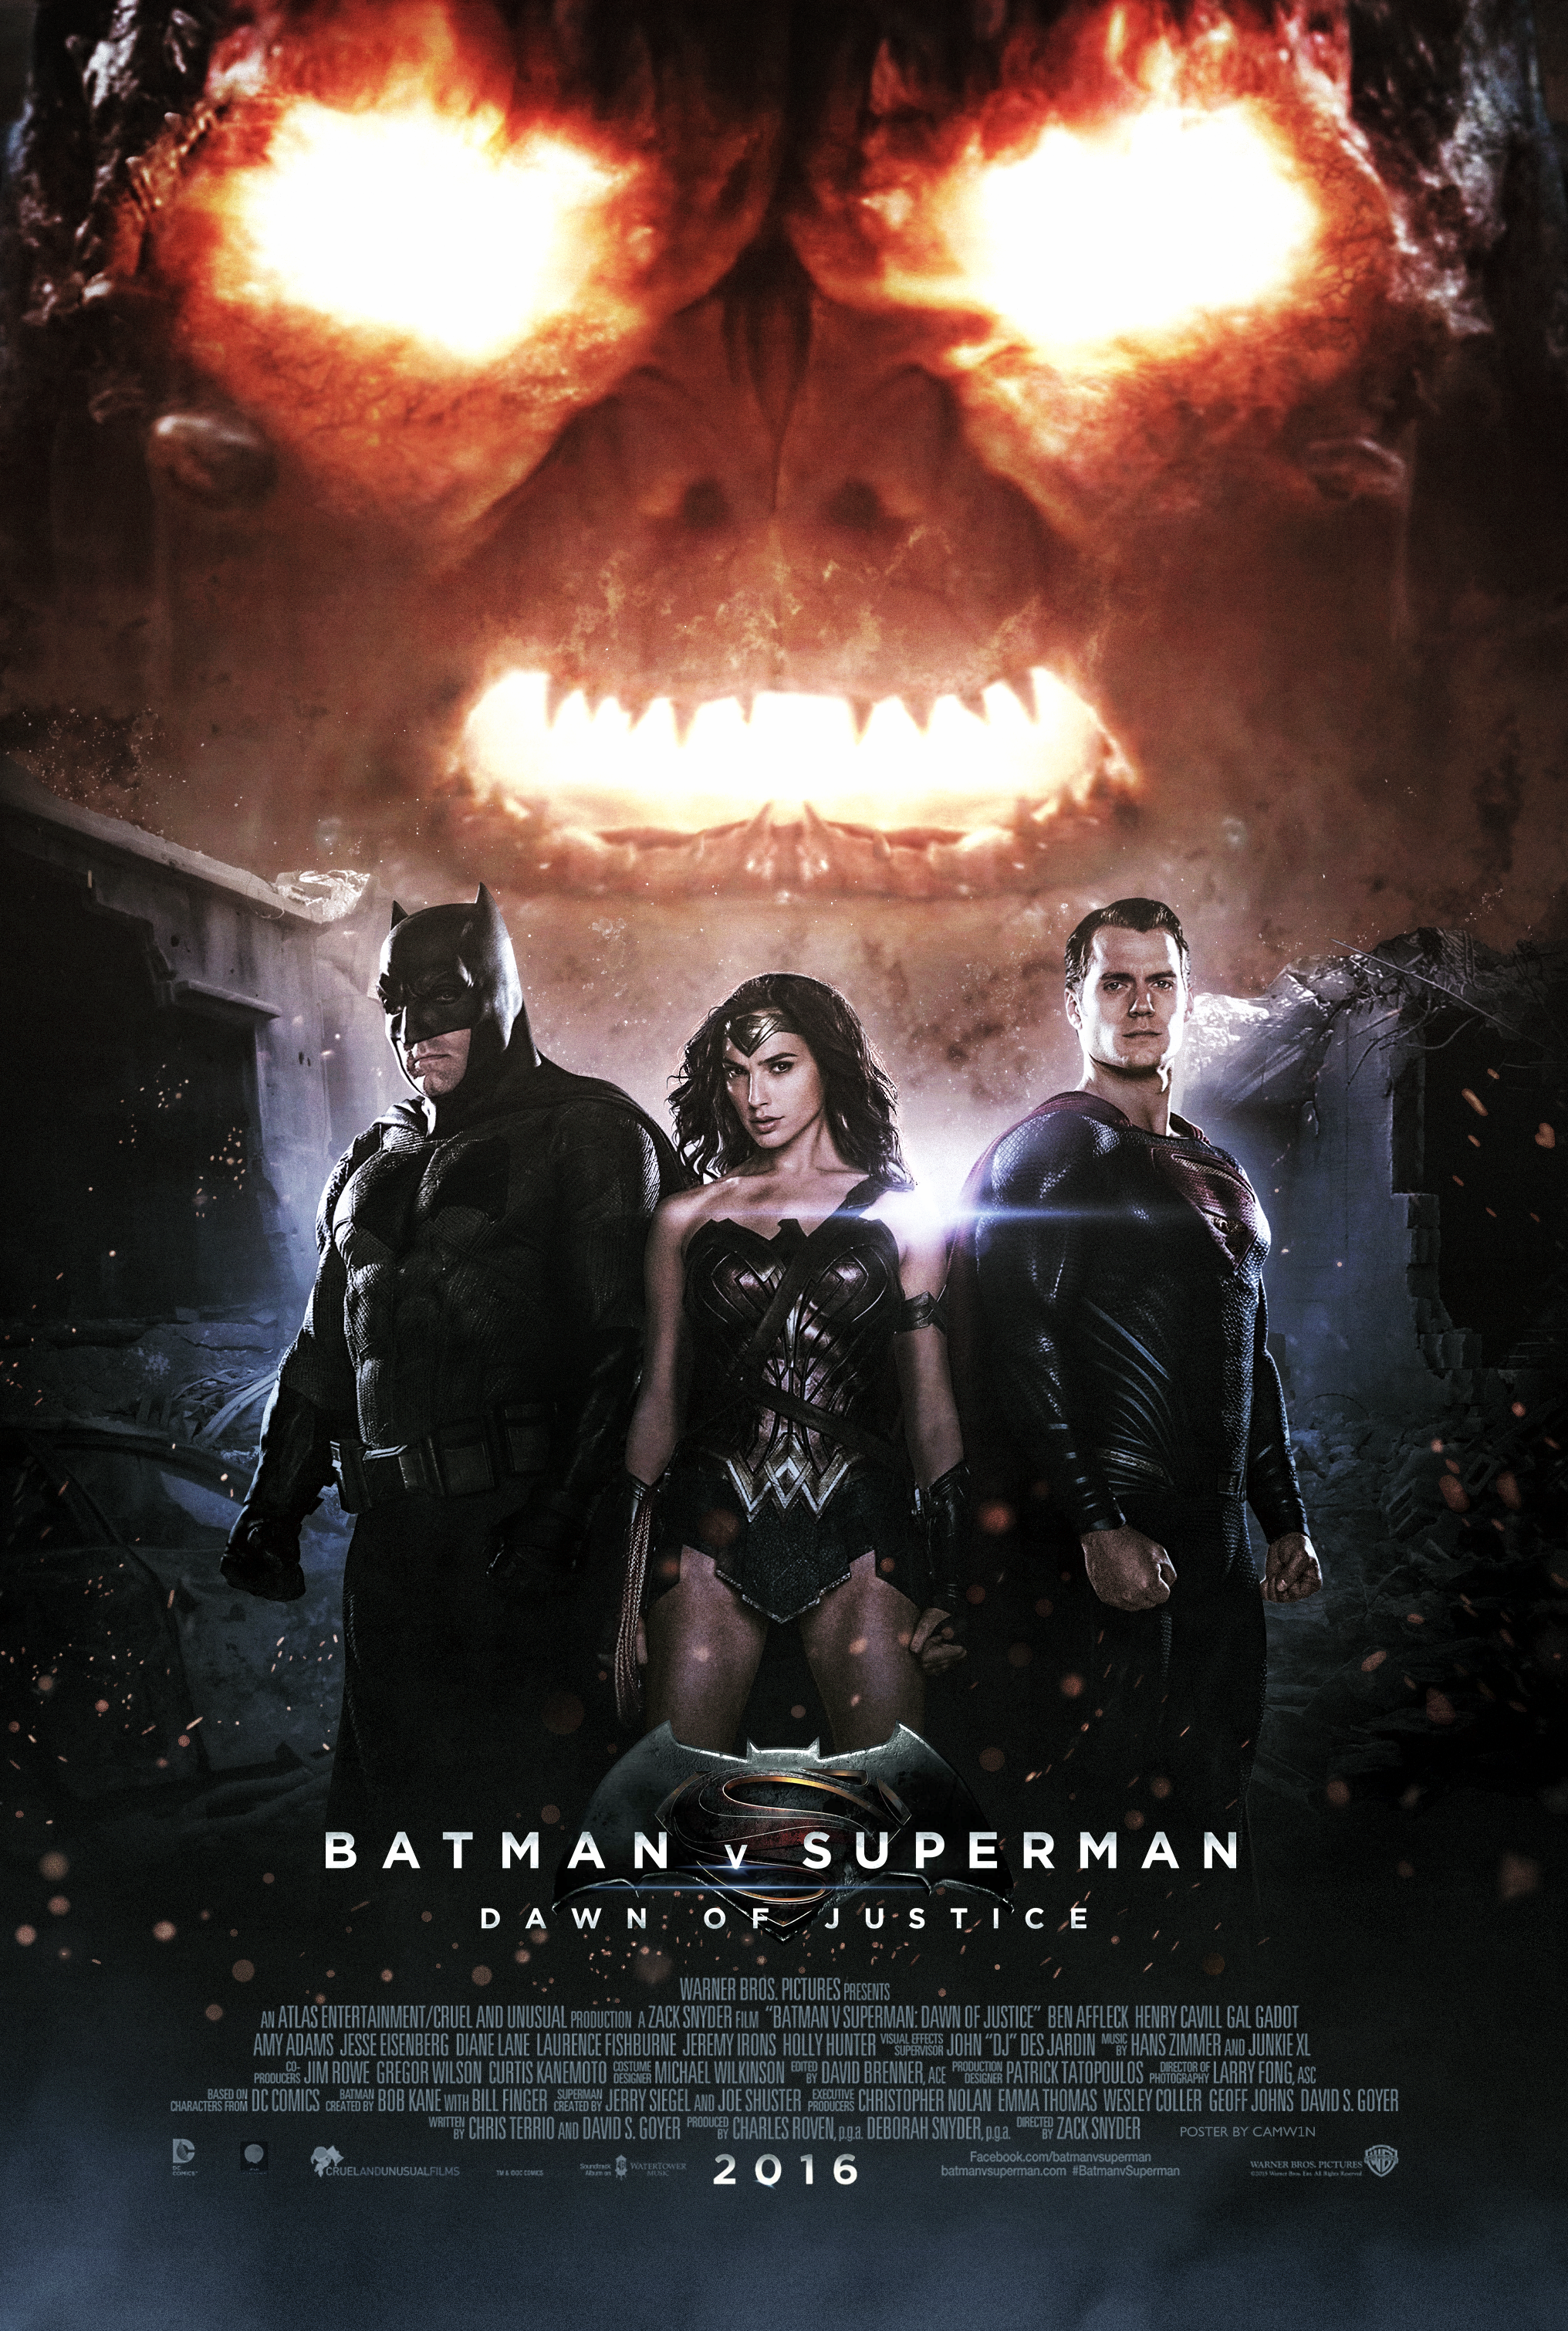 Batman V Superman 2016 Doomsday Poster By Camw1n On Deviantart